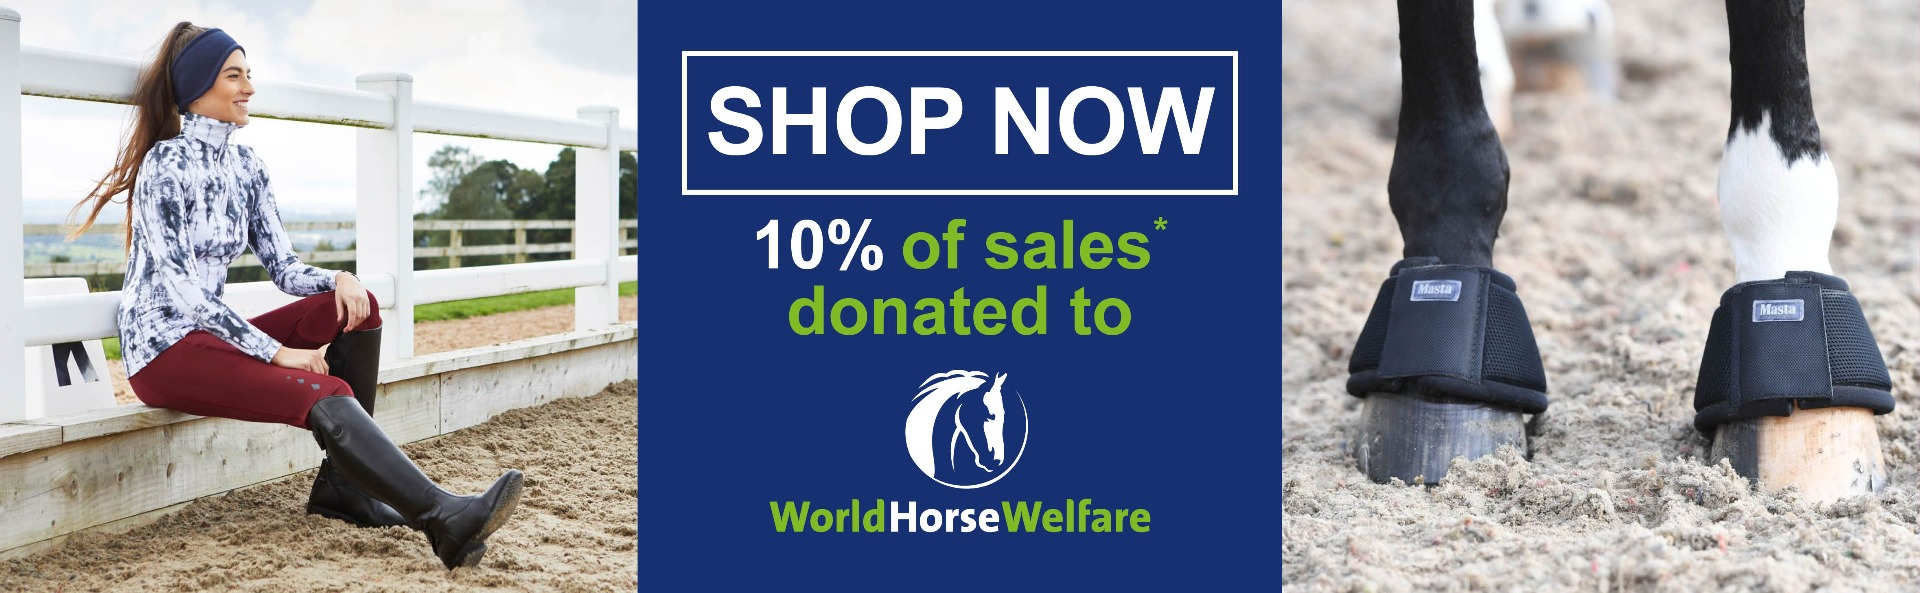 World Horse Welfare Charity Partner | Harry Hall